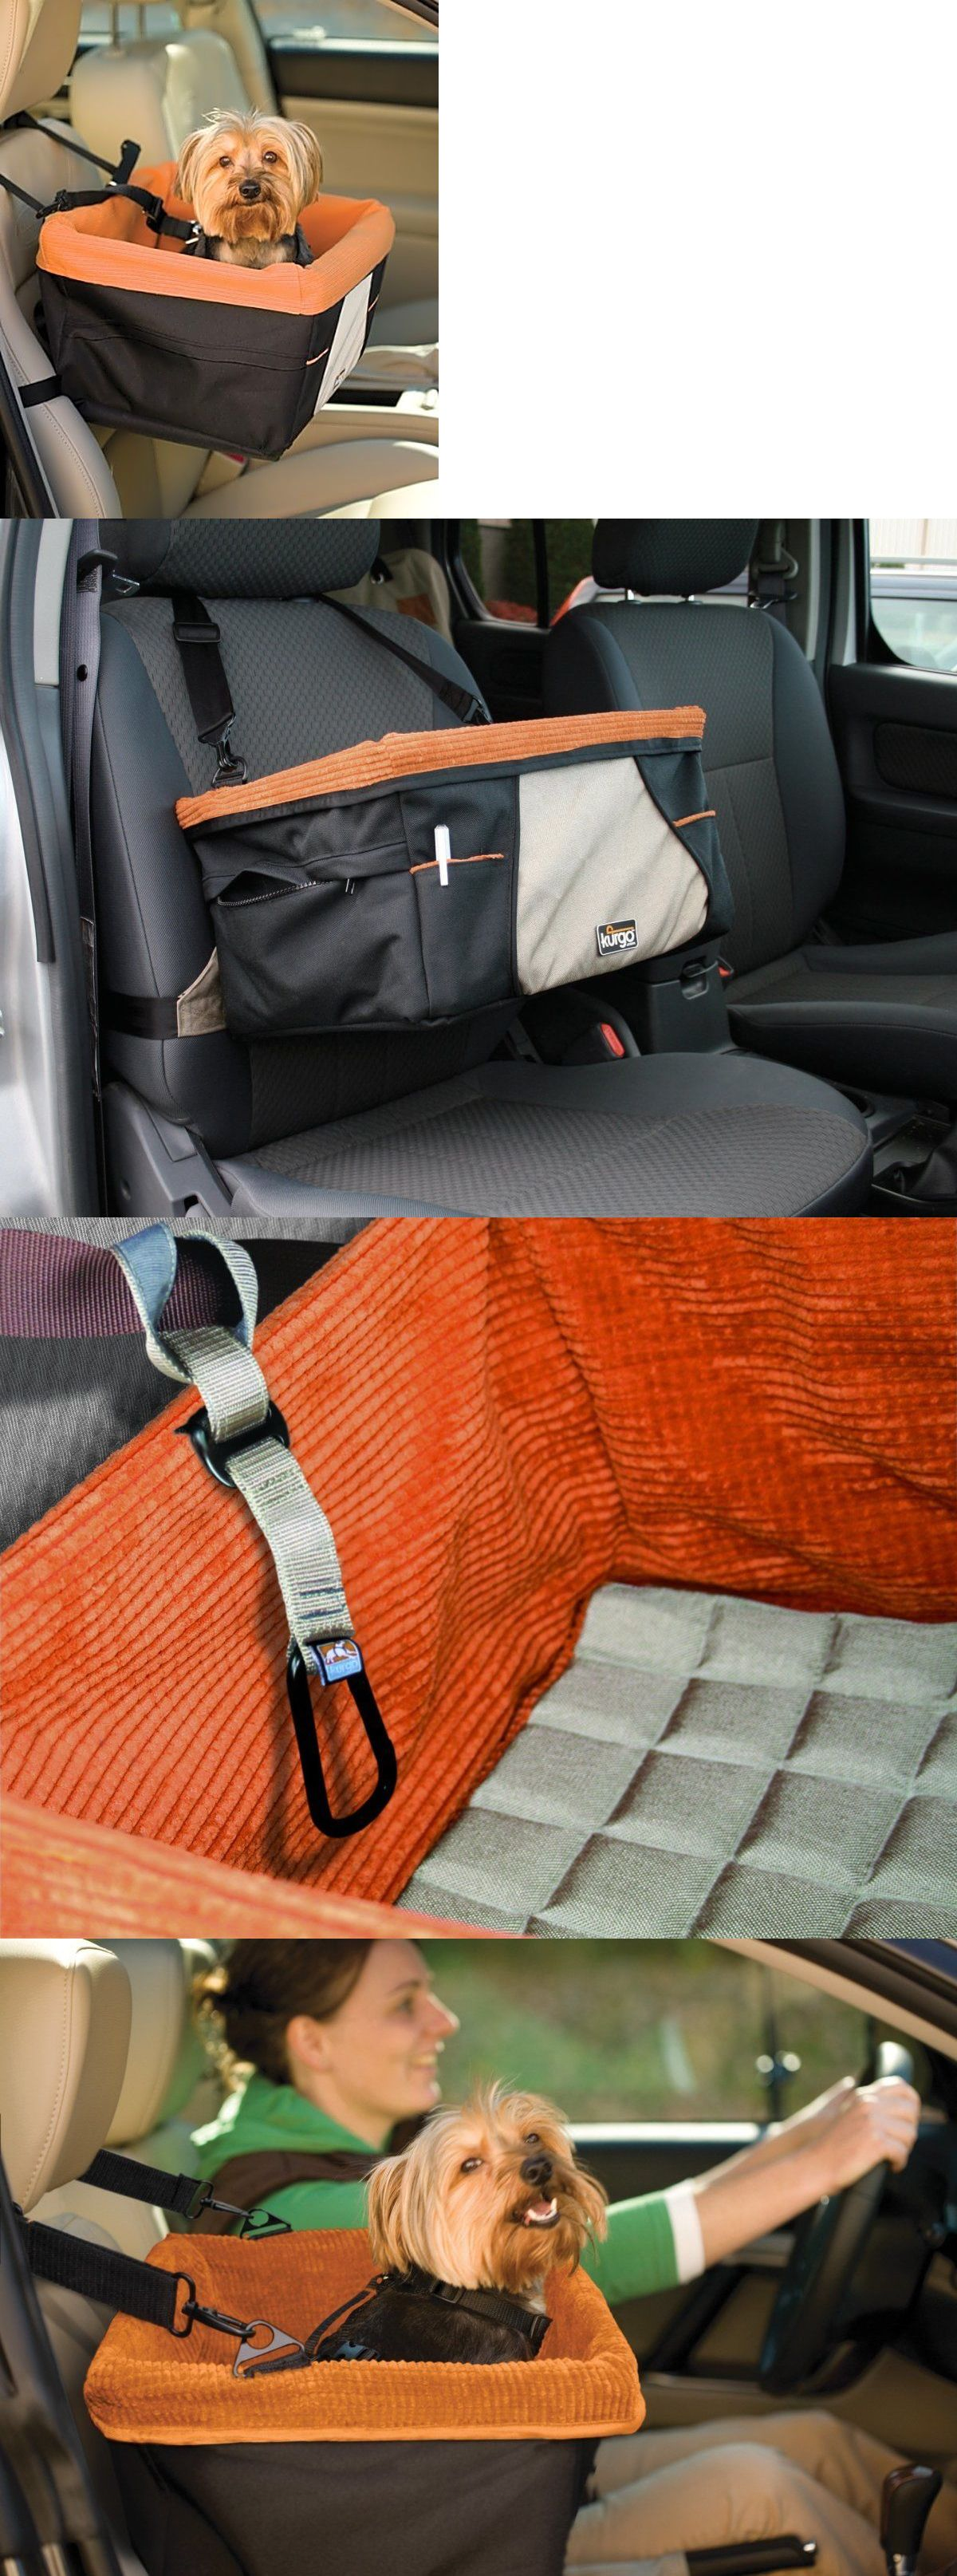 Car seats and barriers 46454 kurgo skybox dog booster seat for cars with seat belt